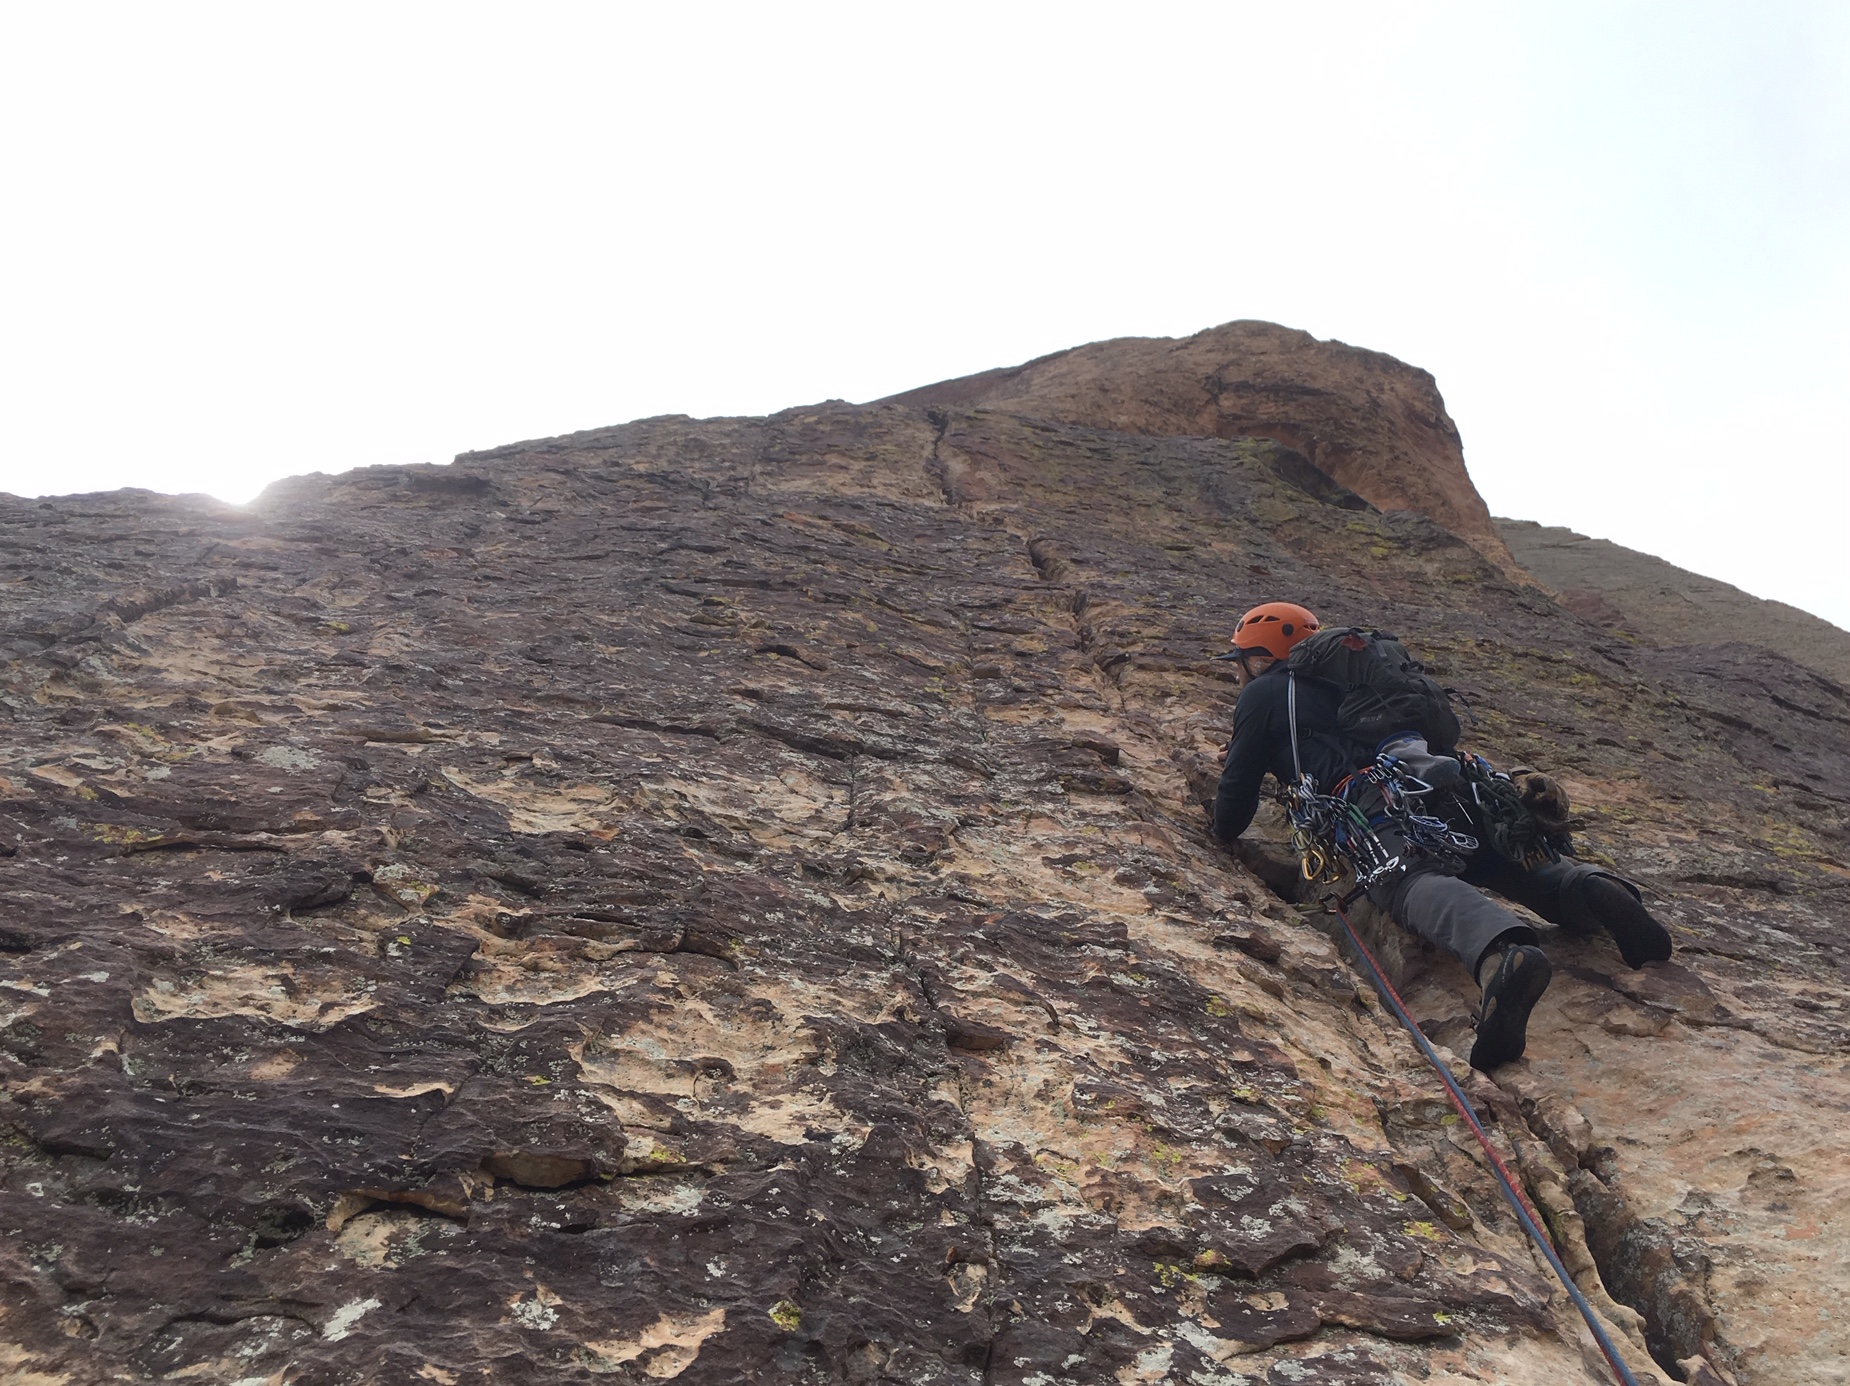 3 Person Rope Team Red Rock Nevada 3 Alpine Climber Rock Climbing SAANO Adventures Trad Climbing Multi Pitch.jpg